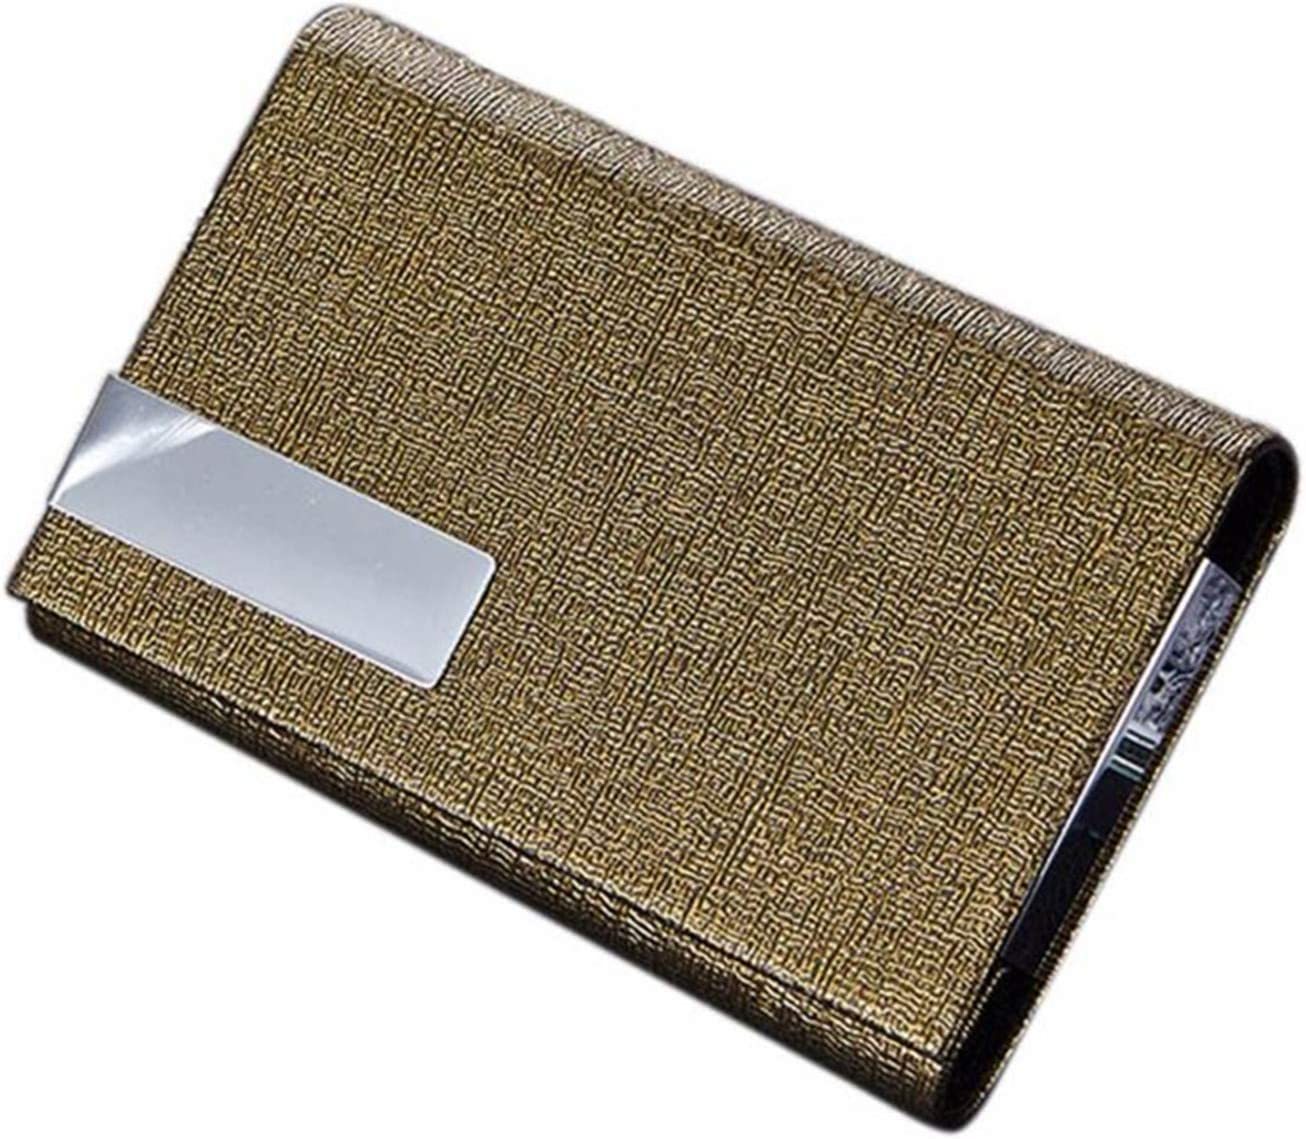 Clearance Bank Credit Card Package Card Holder Business Card Case O0517#30